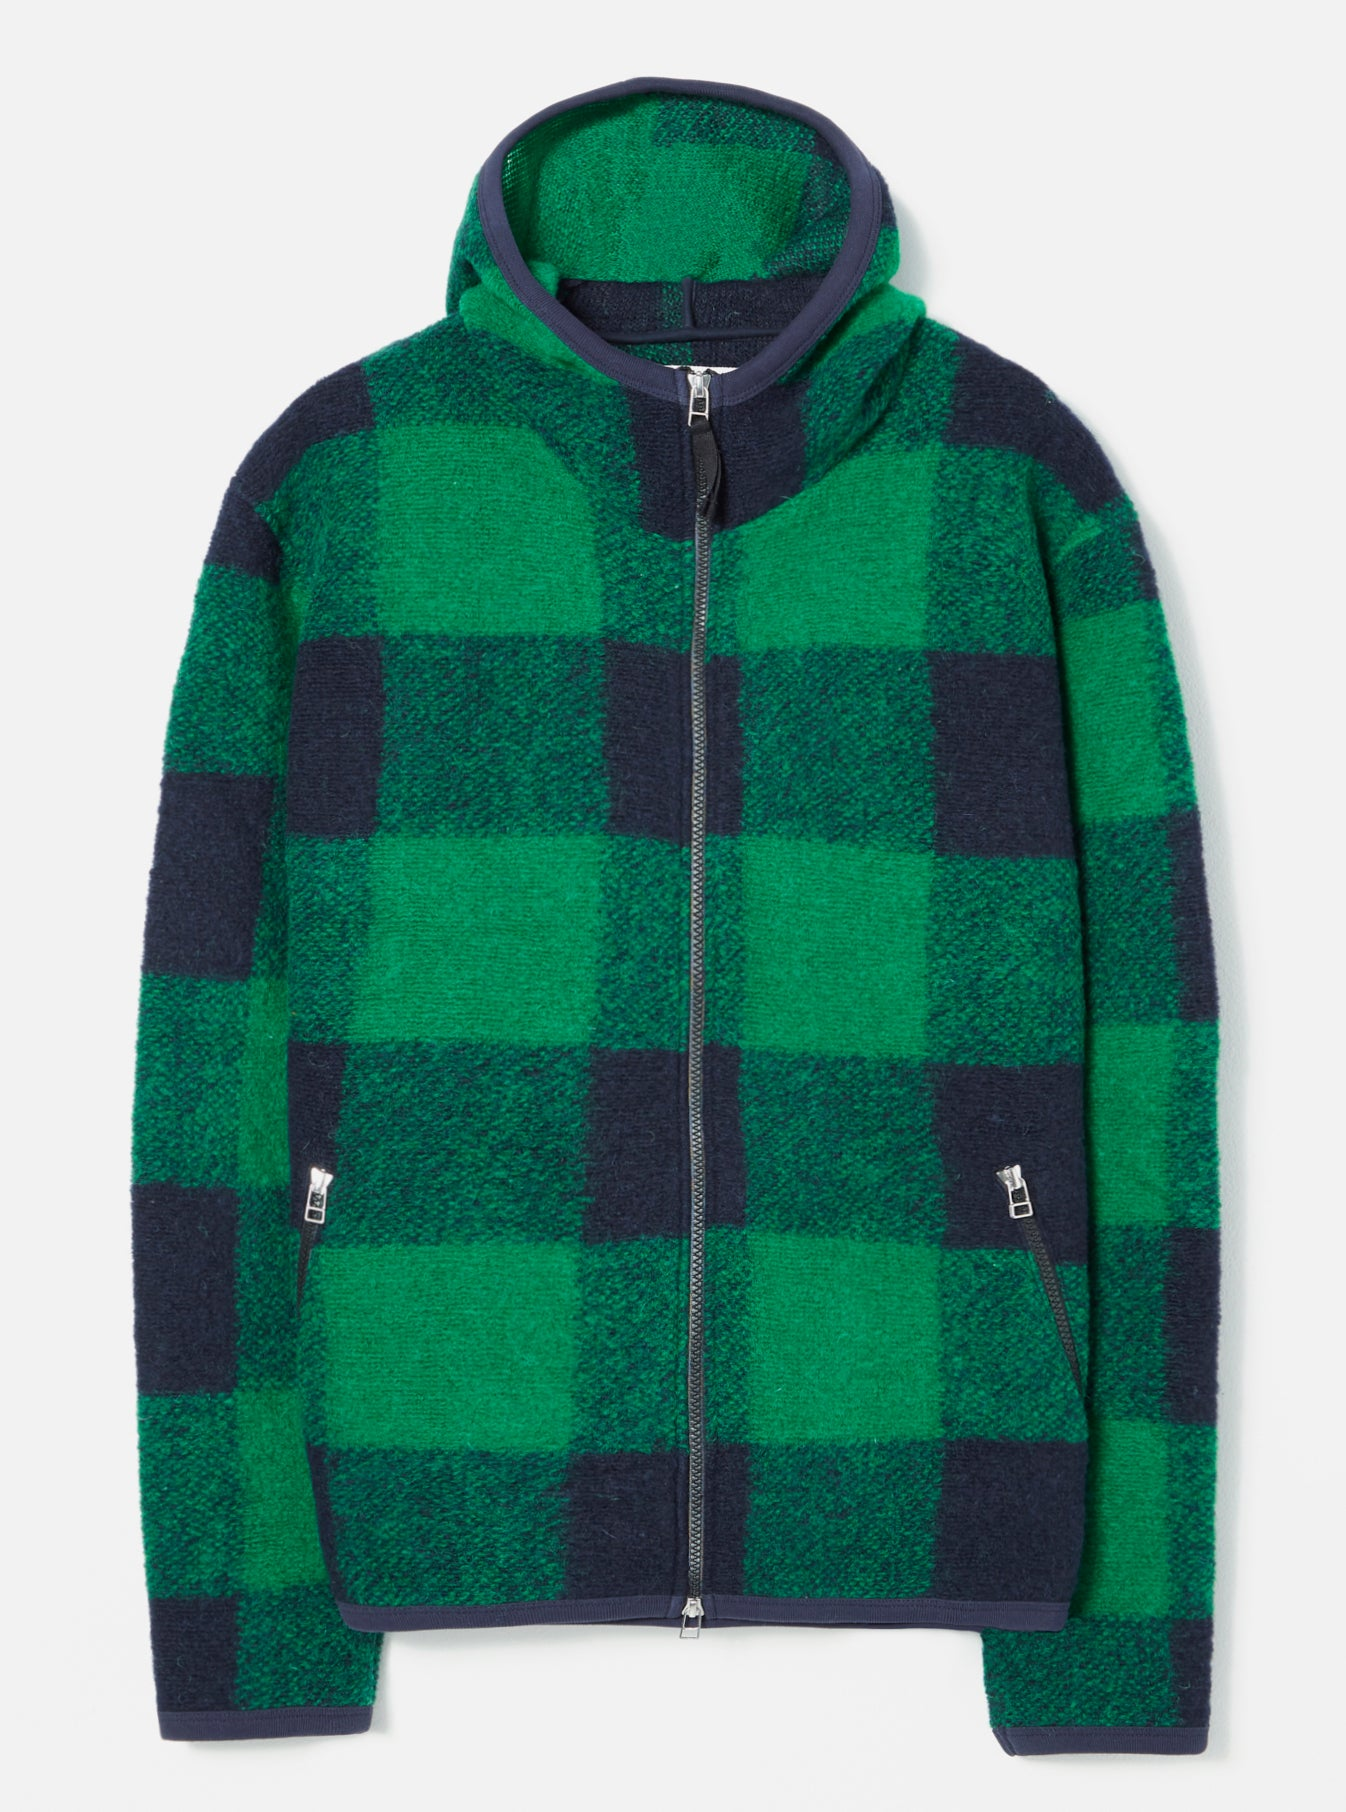 Universal Works Surfer Hoodie in Green Check Wool Fleece